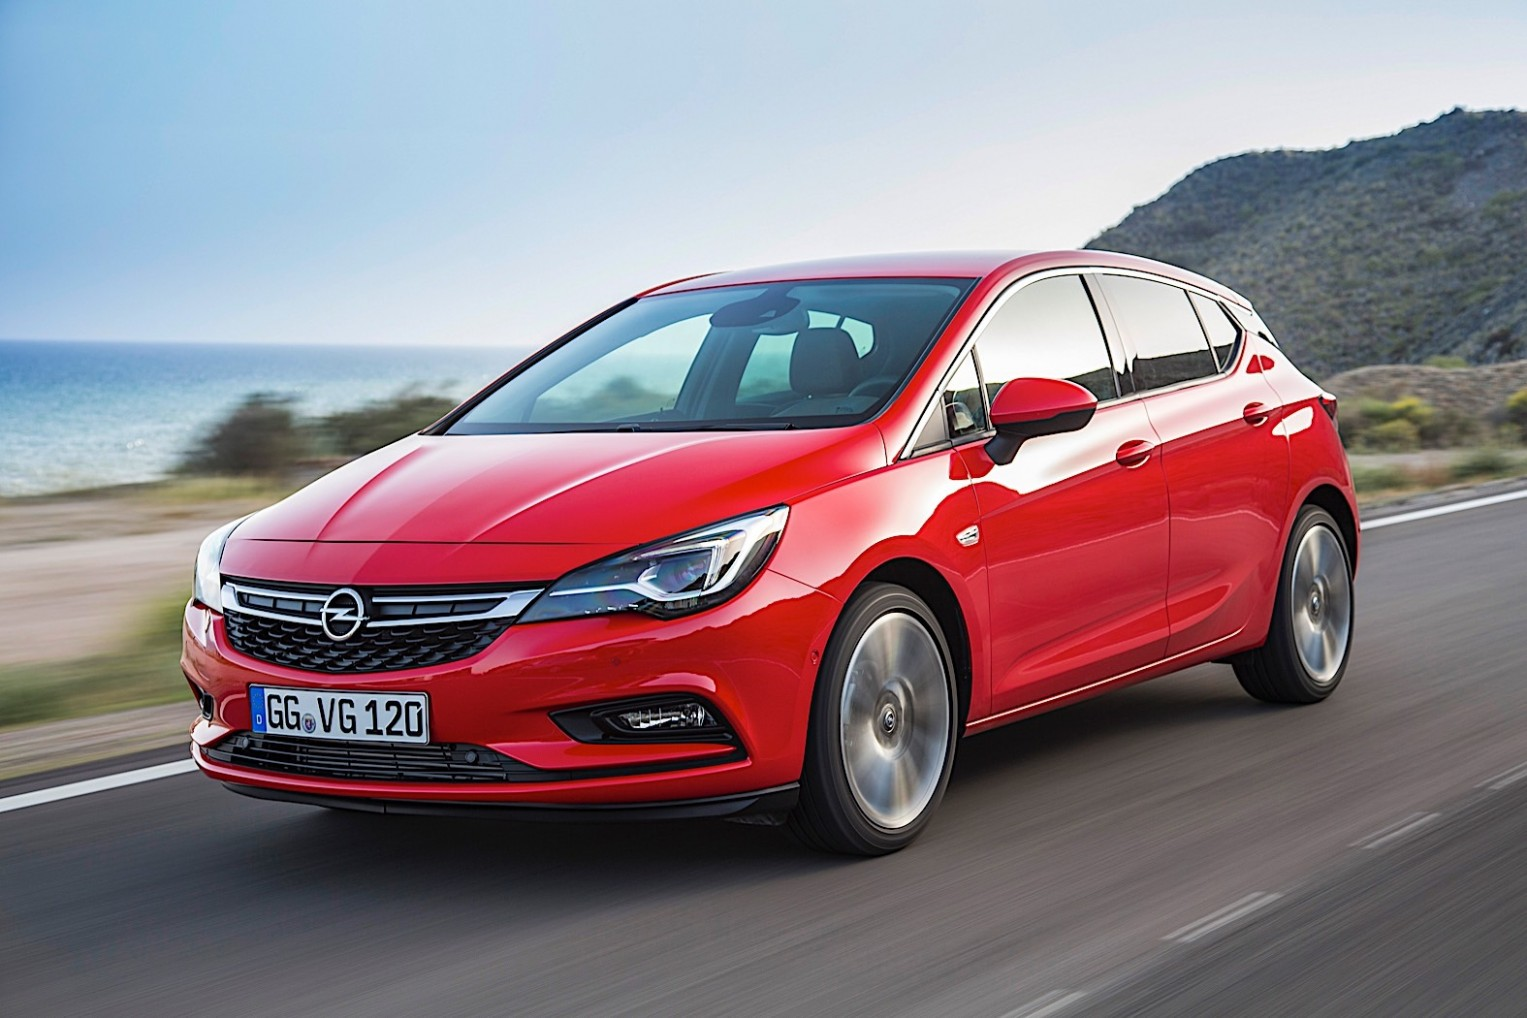 3 Opel Astra Will Have Peugeot Platform and Up to 3 HP - New Opel Astra 2021